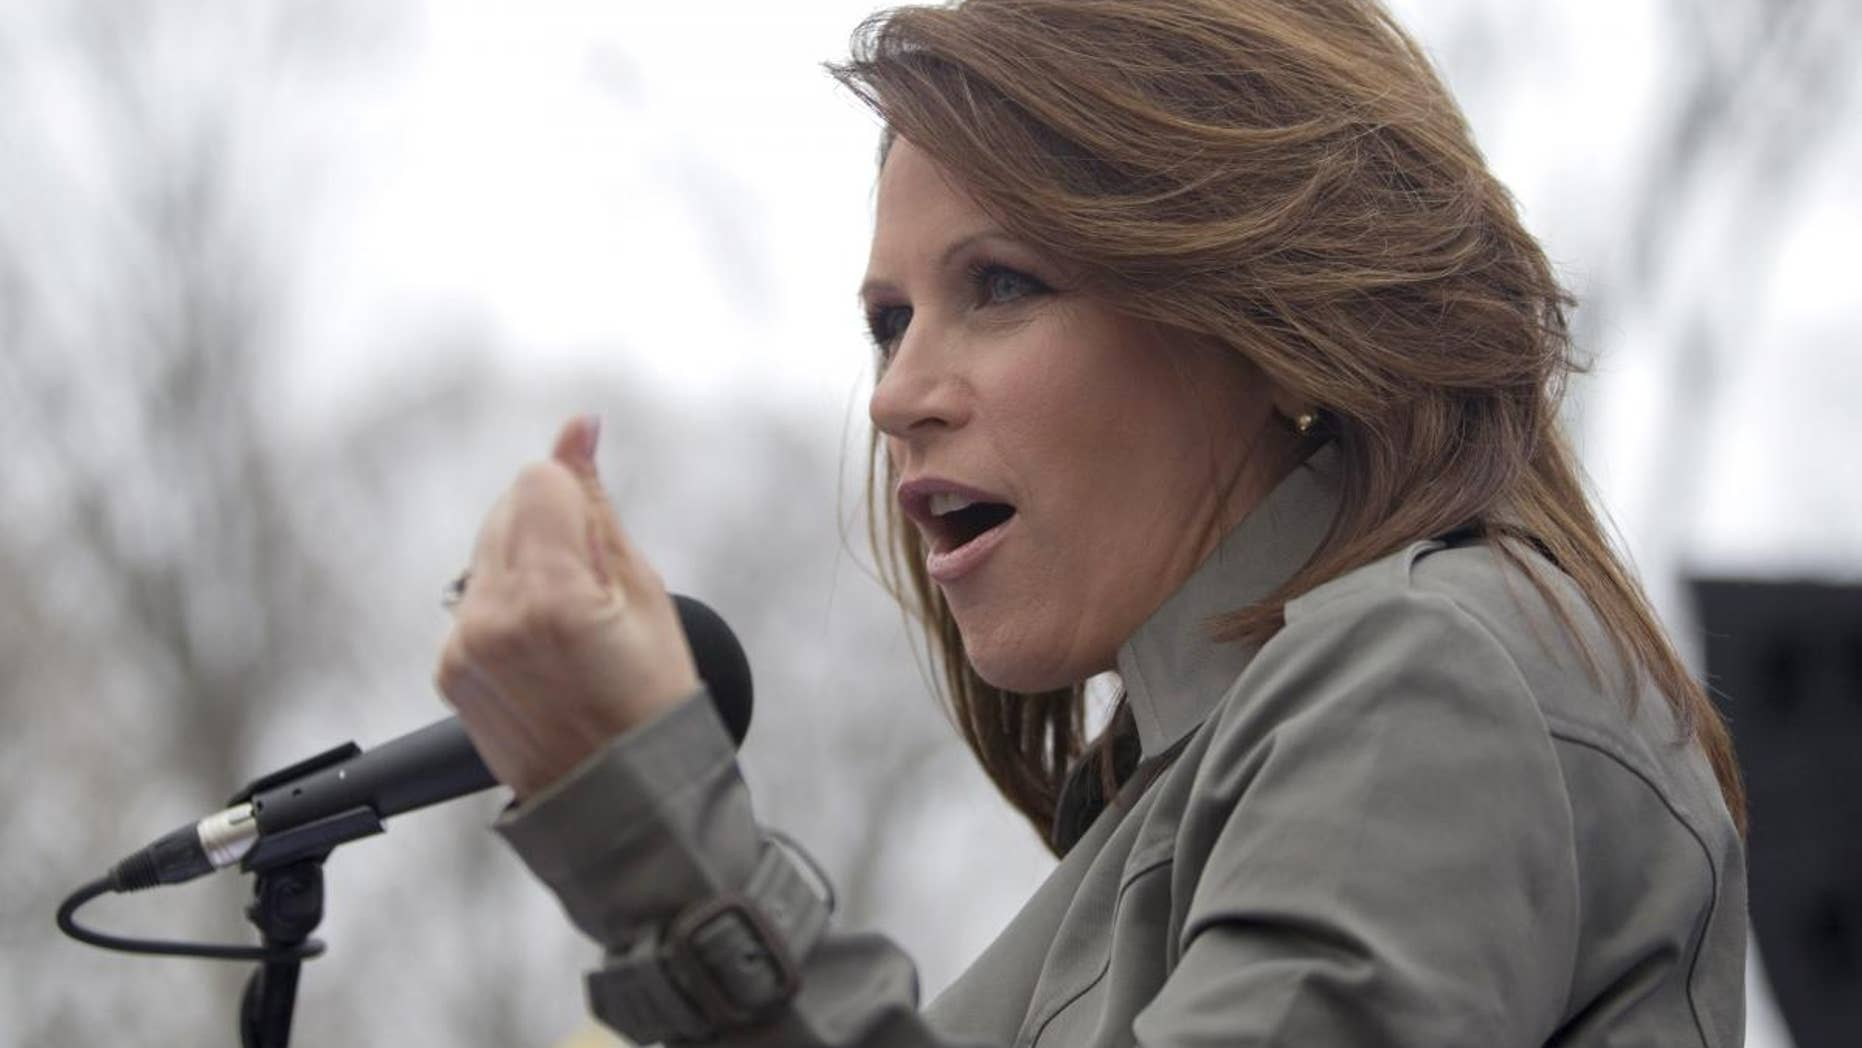 """Rep. Michele Bachmann, R-Minn. gestures while addressing a Tea Party """"Continuing Revolution Rally"""" on Capitol Hill in Washington, Thursday, March 31, 2011. (AP Photo/Evan Vucci)"""